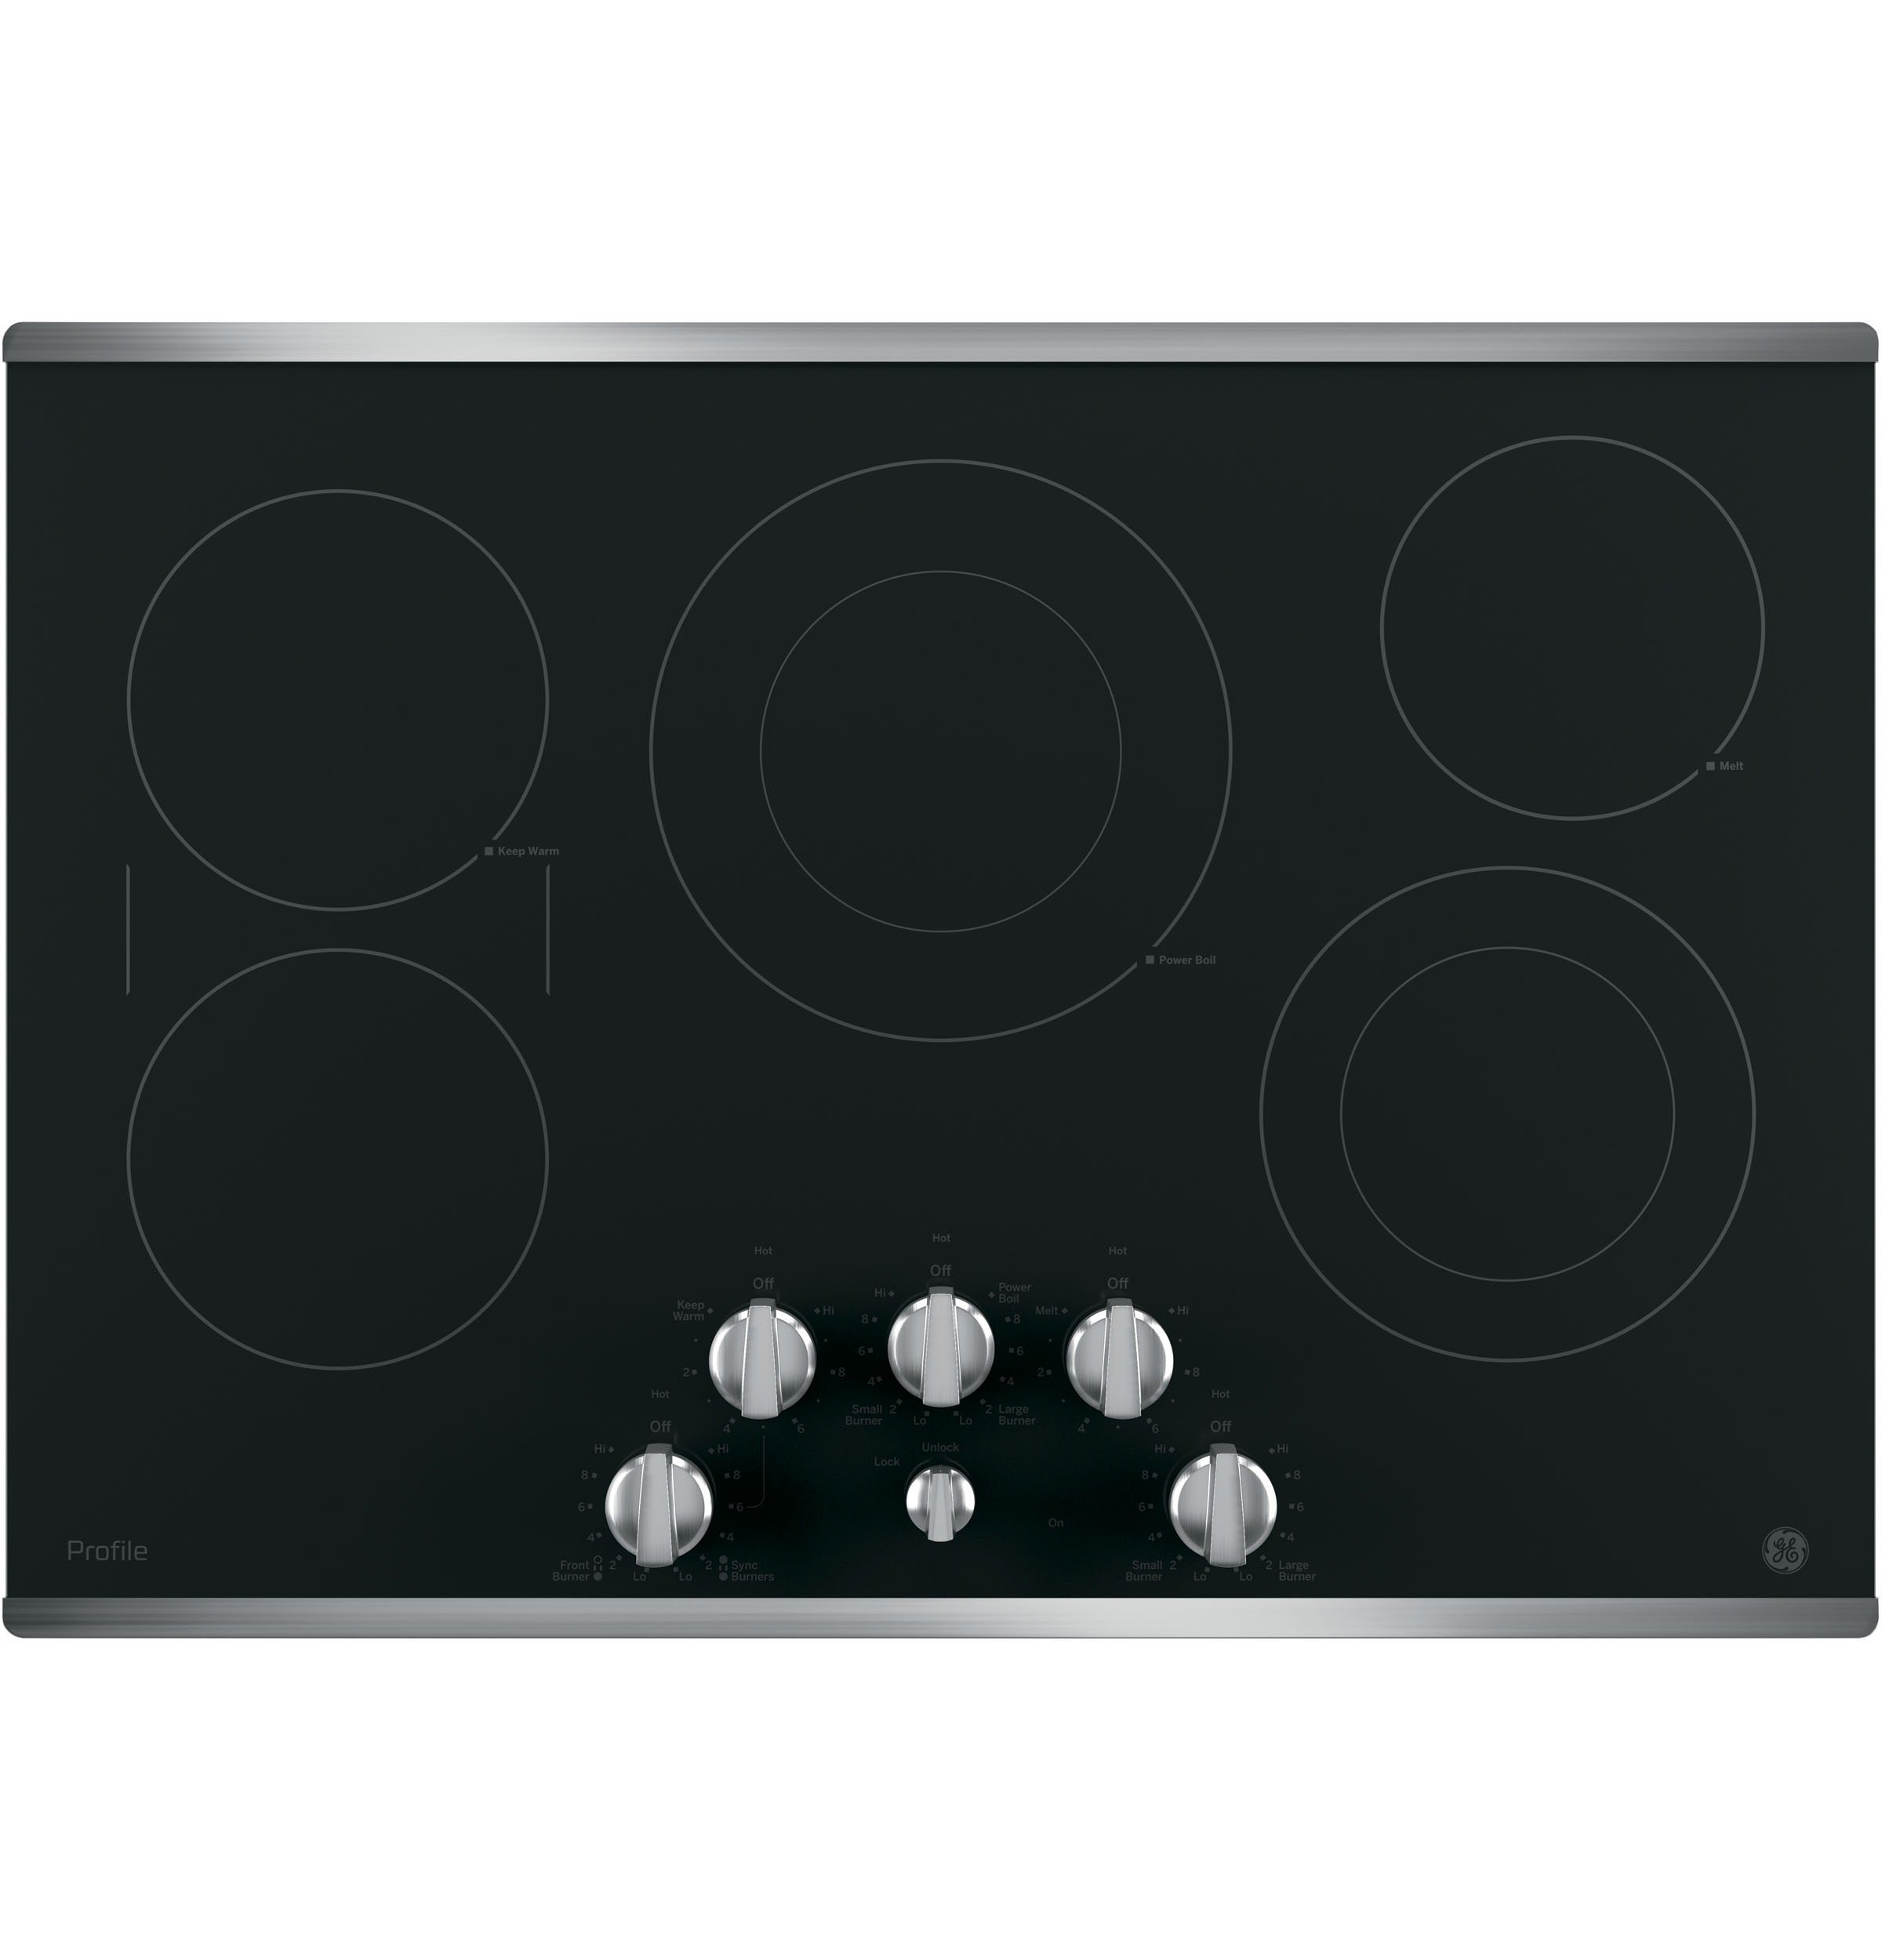 "Profile GE Profile™ 30"" Built-In Knob Control Electric Cooktop"